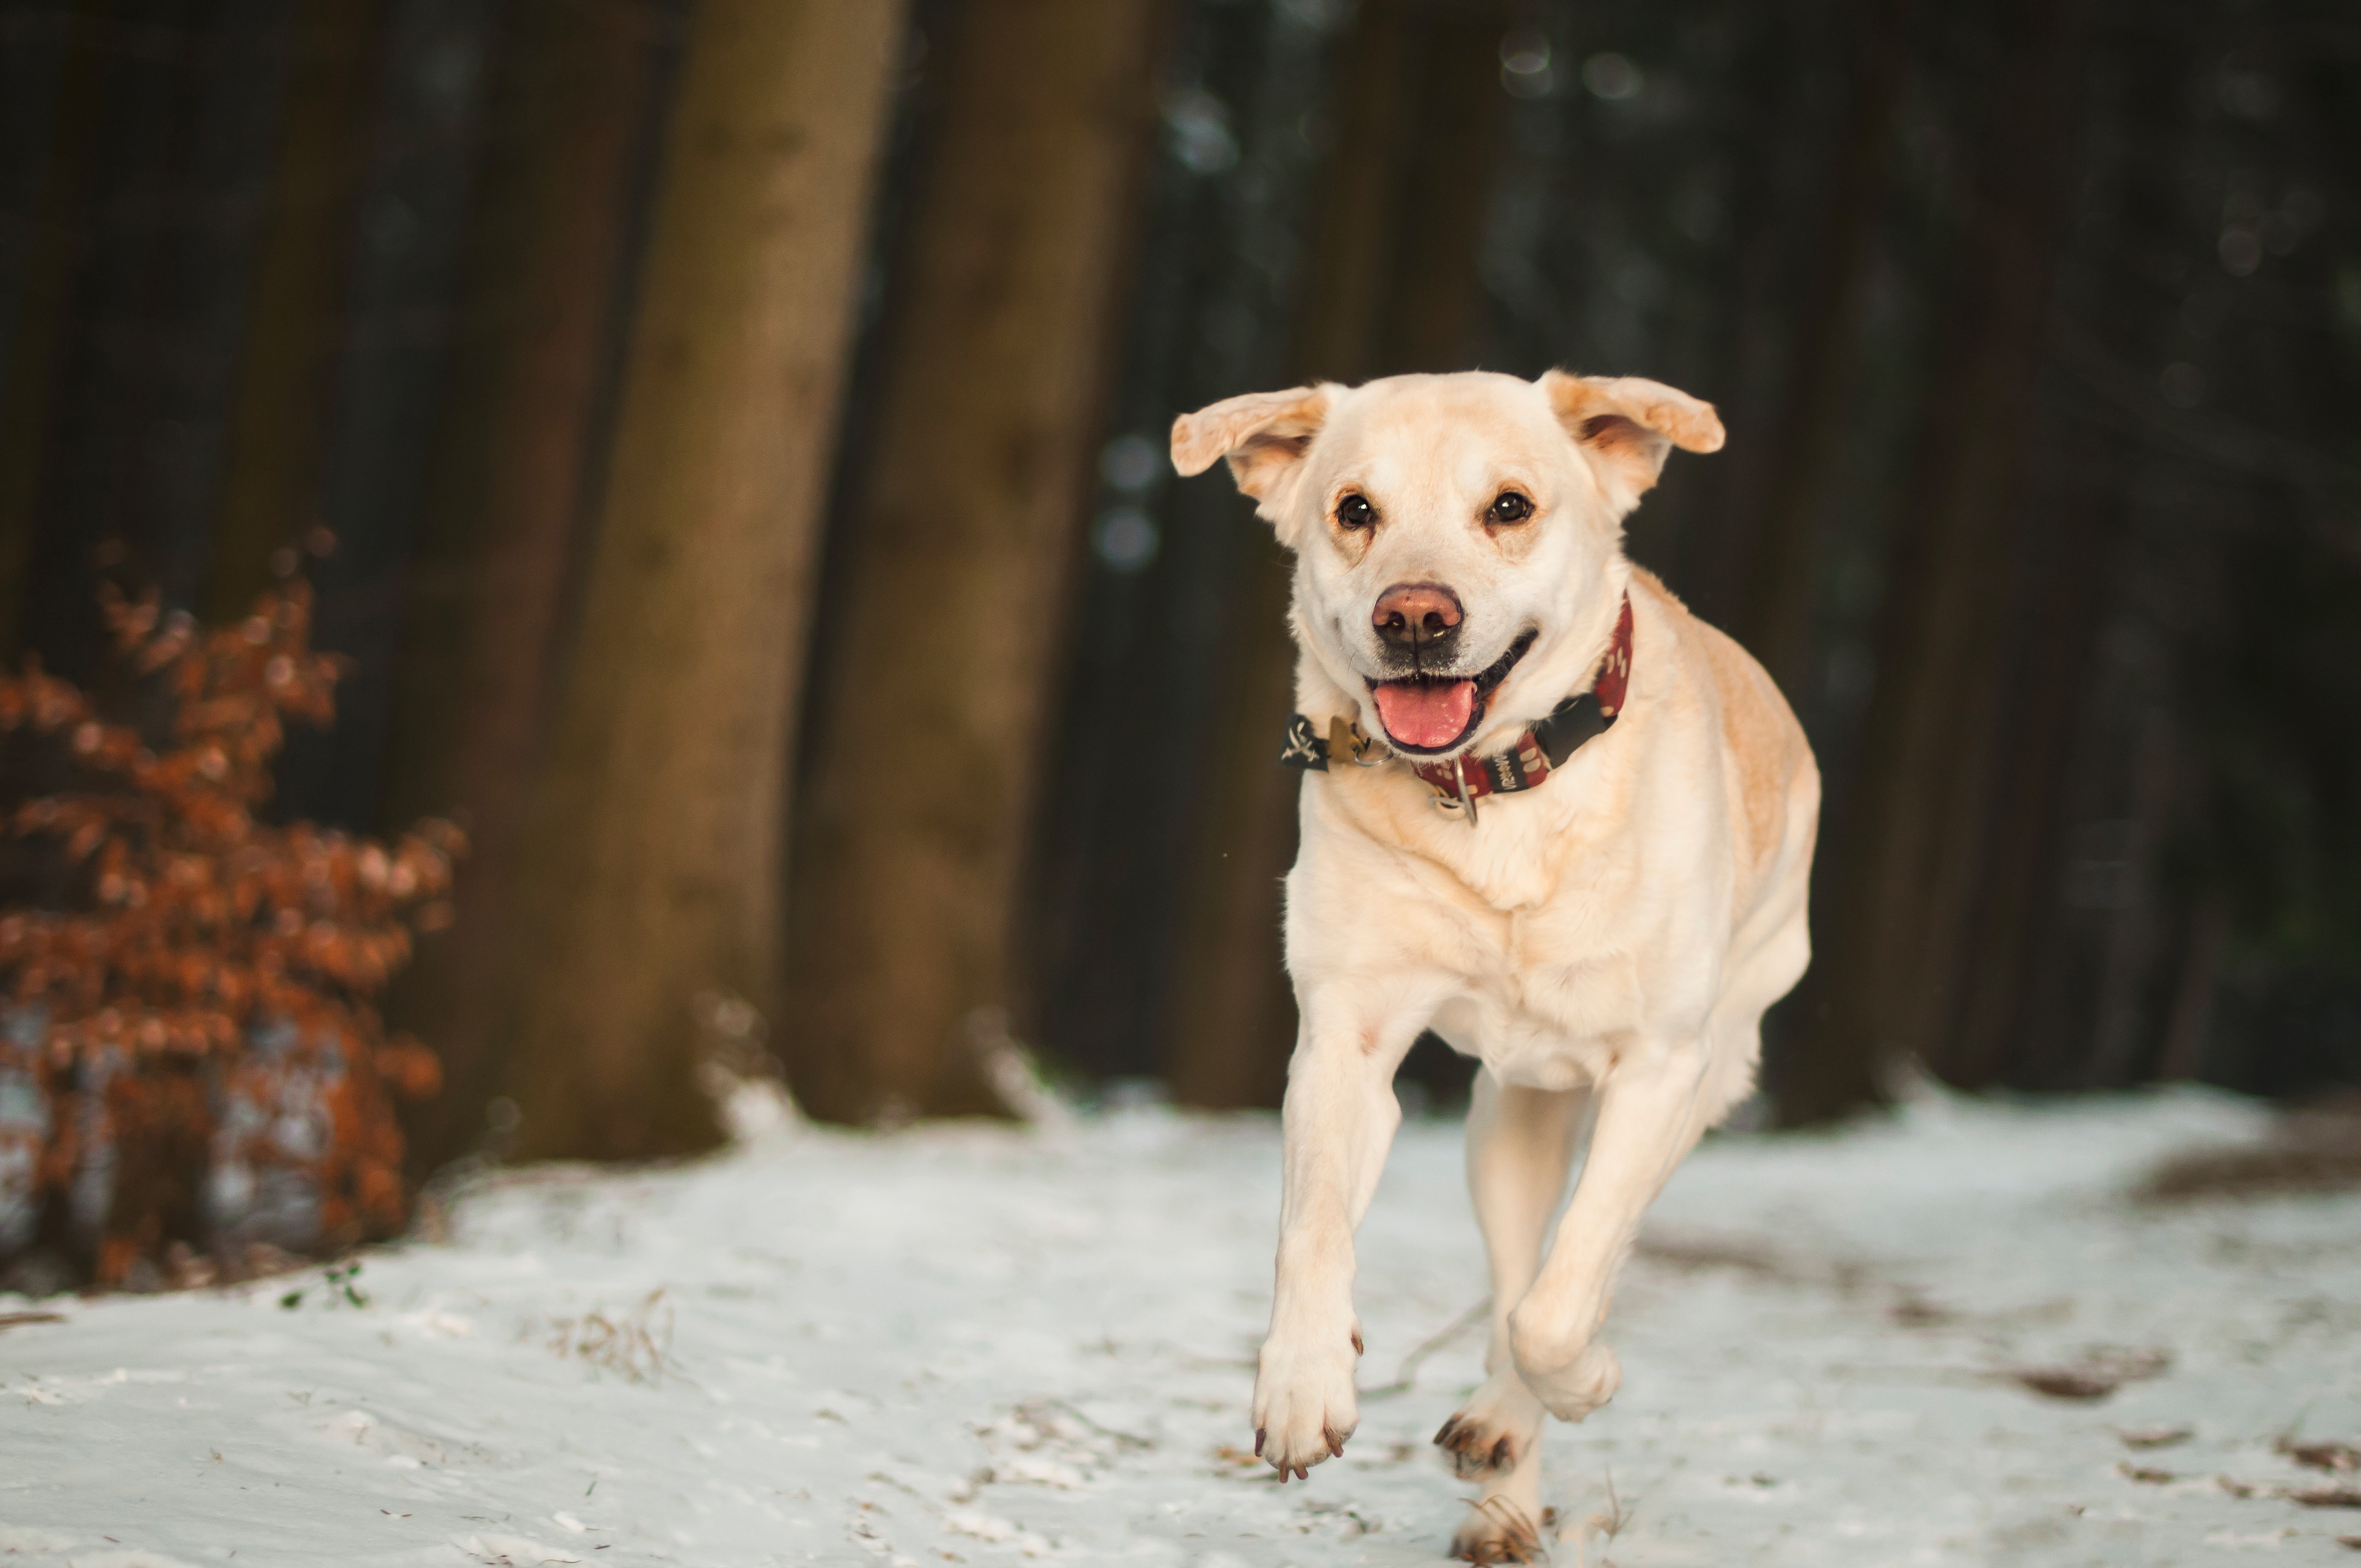 82520 download wallpaper Animals, Labrador, Dog, Snow, Run Away, Run screensavers and pictures for free